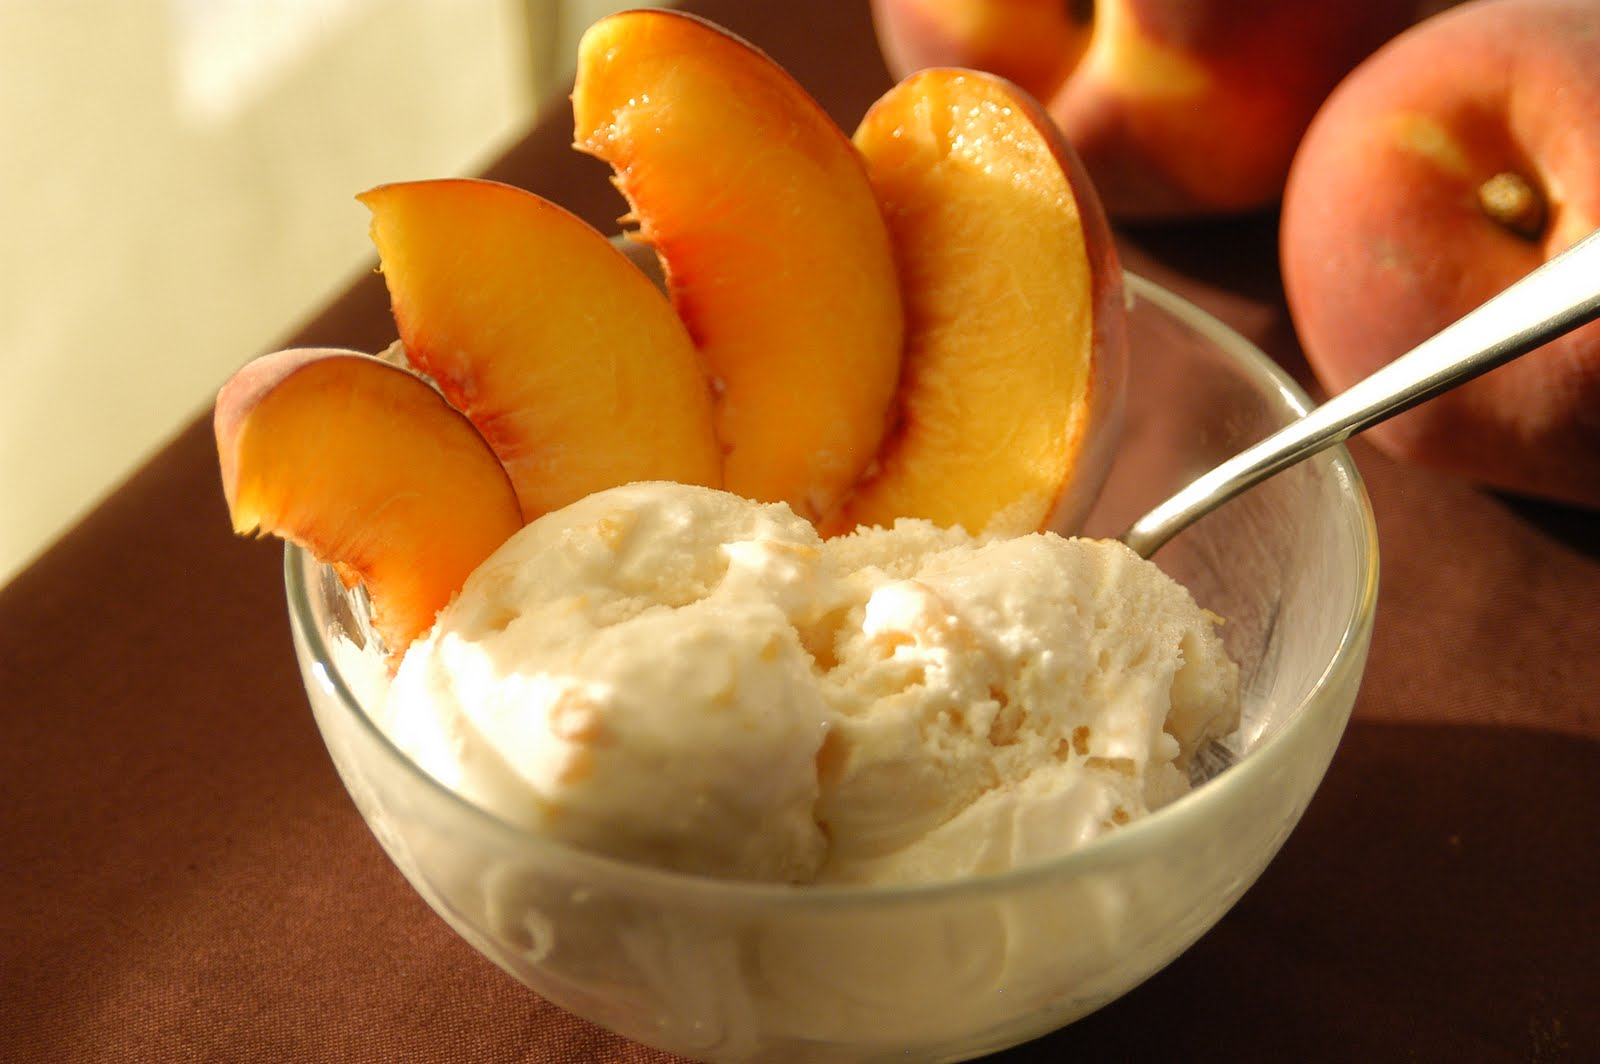 Peach ice cream is a cool treat for a hot summer day